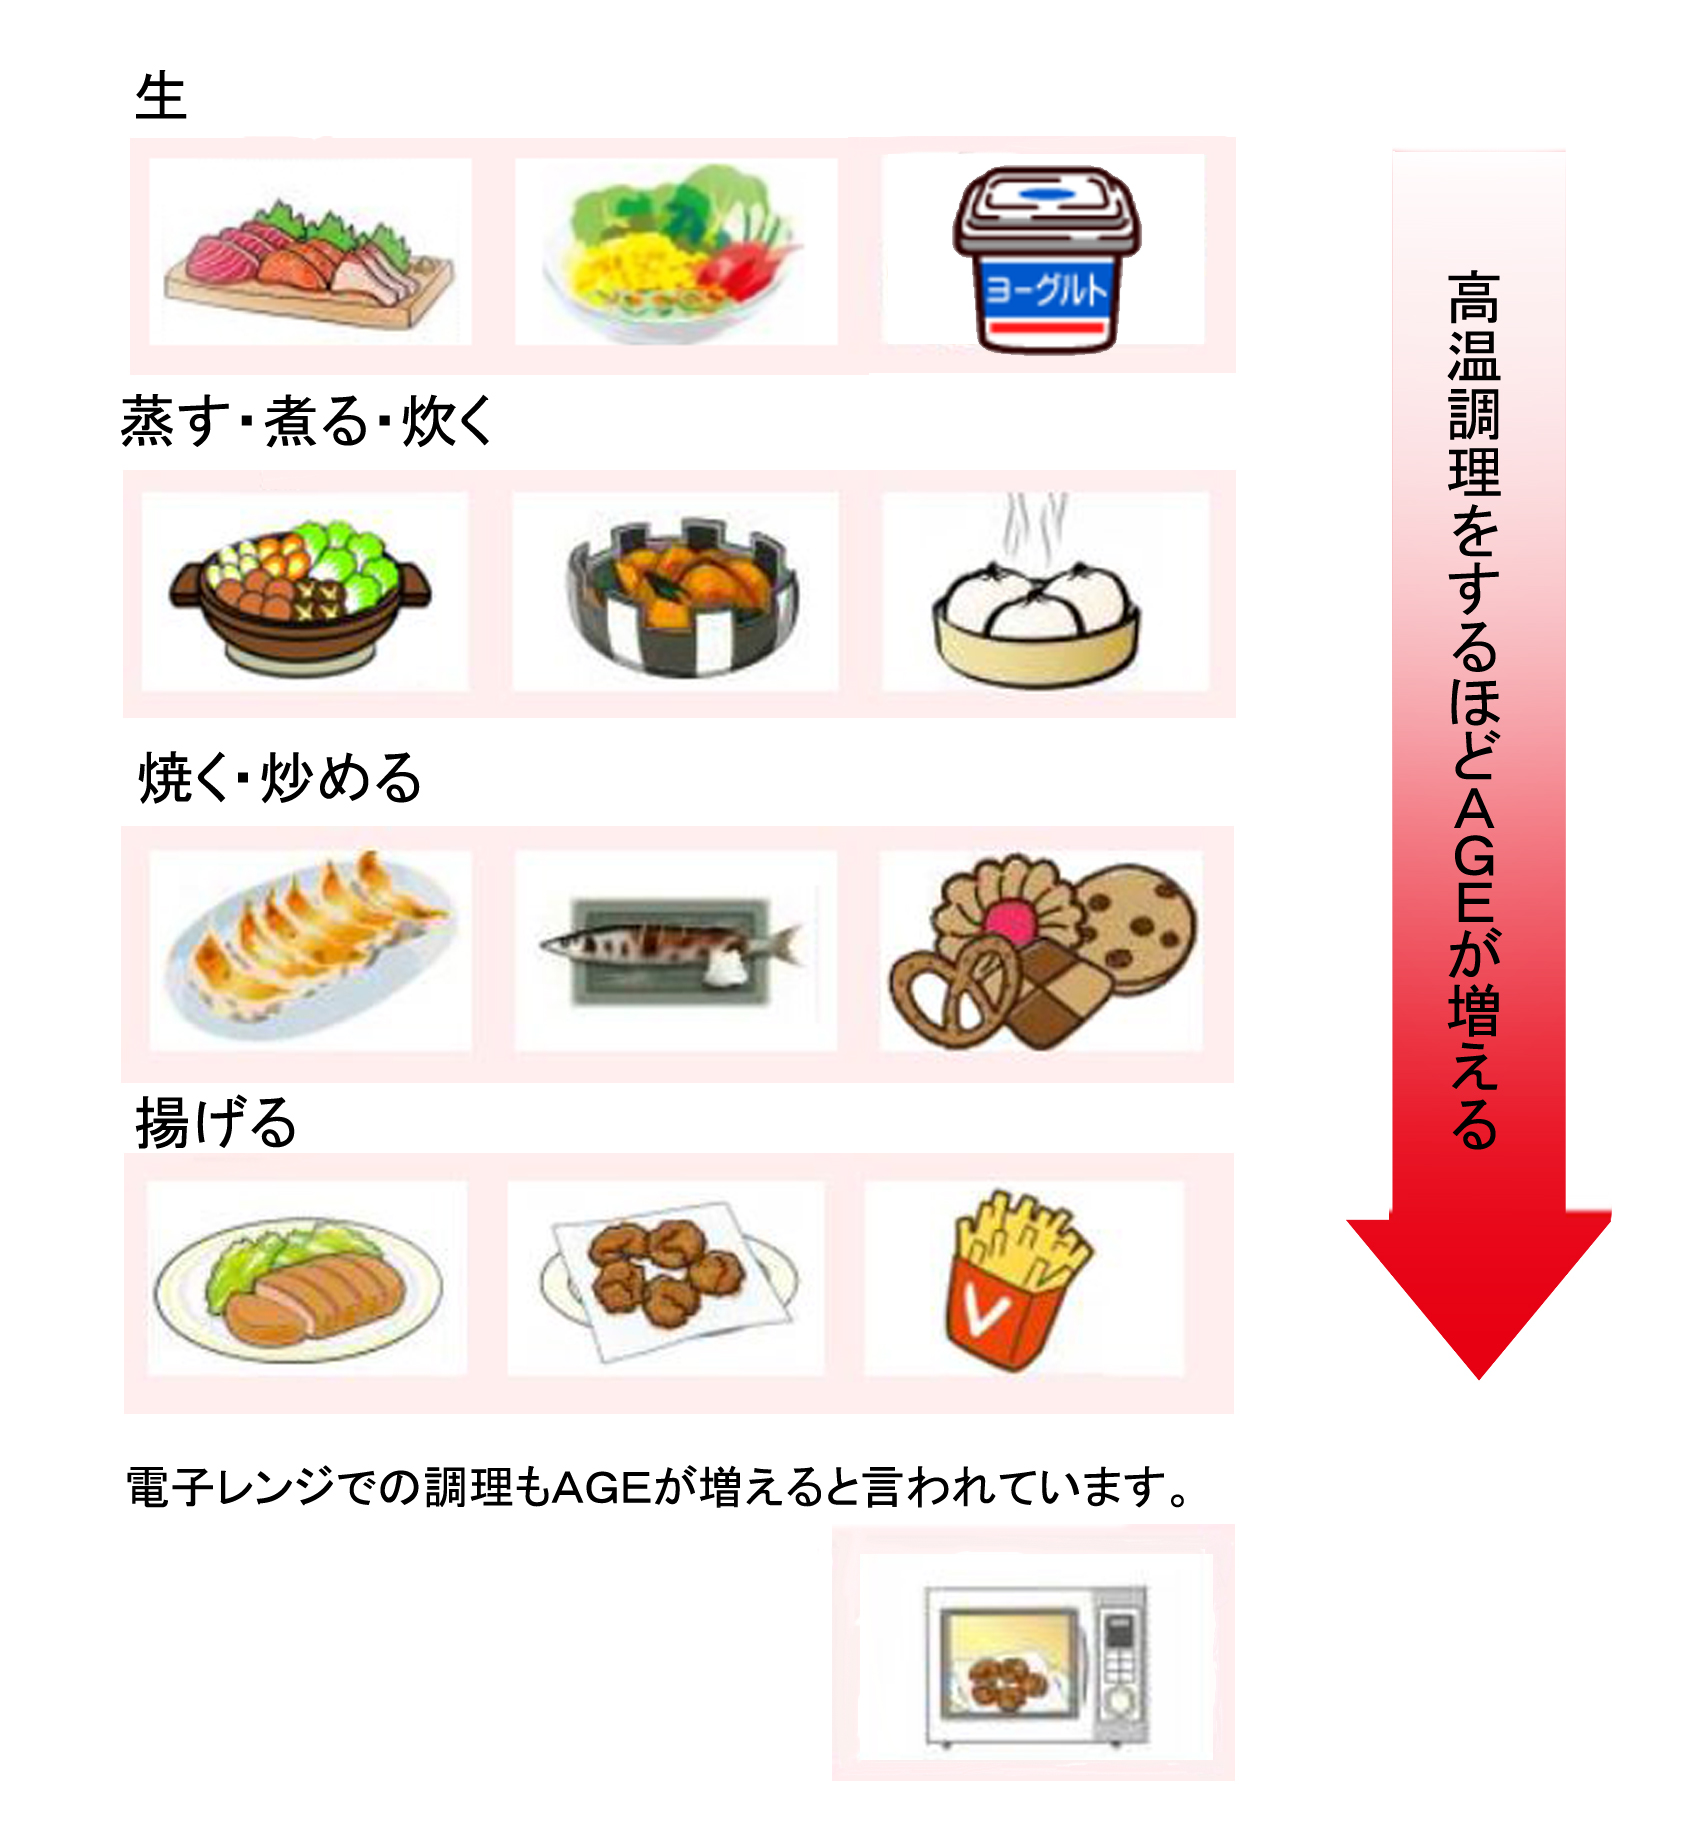 AGEs食べ物